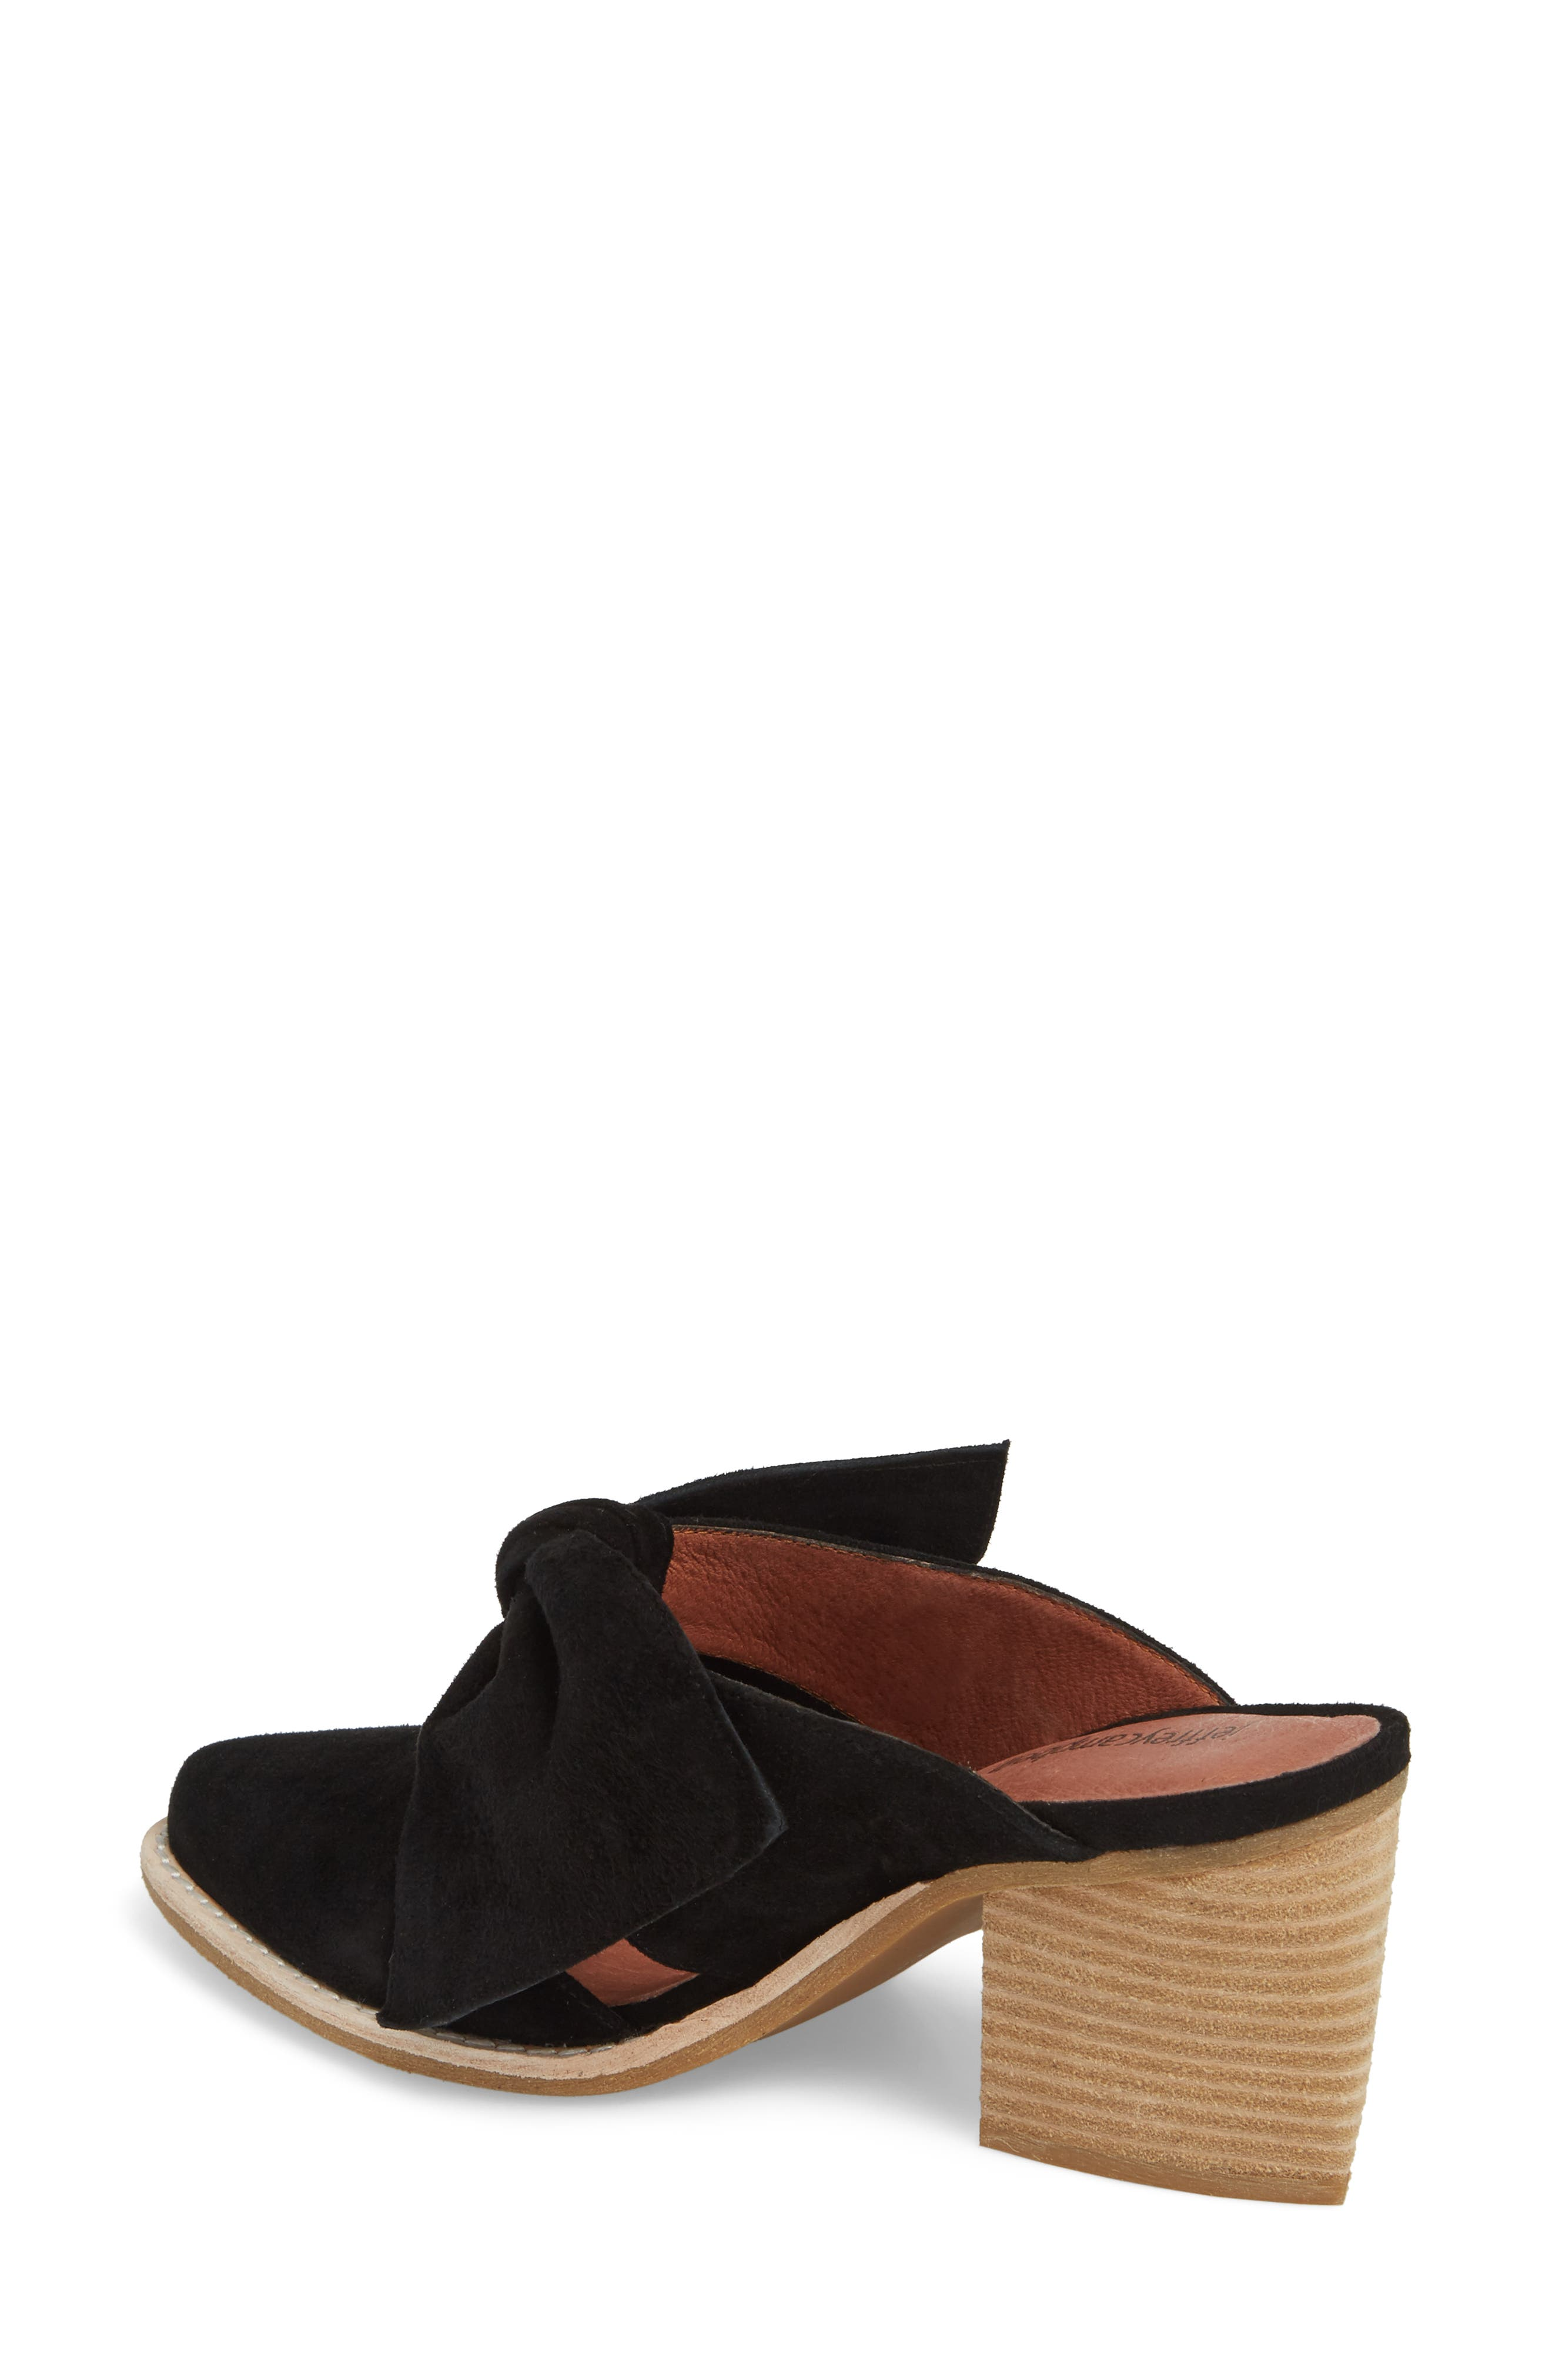 JEFFREY CAMPBELL,                             Cyrus Knotted Mary Jane Mule,                             Alternate thumbnail 2, color,                             001